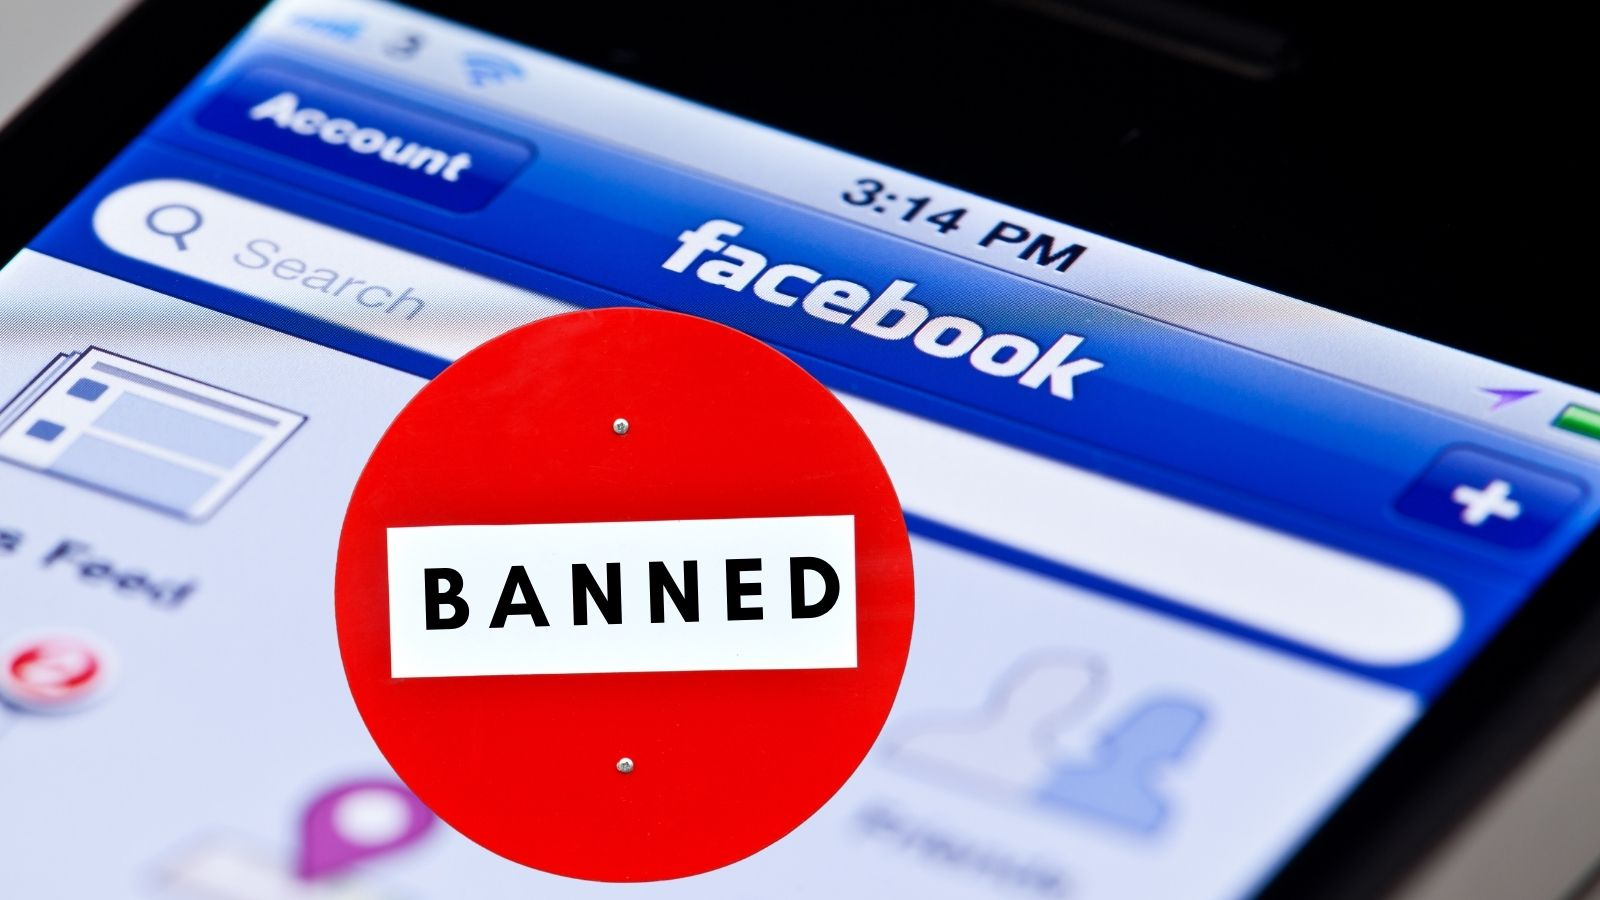 banned from Facebook